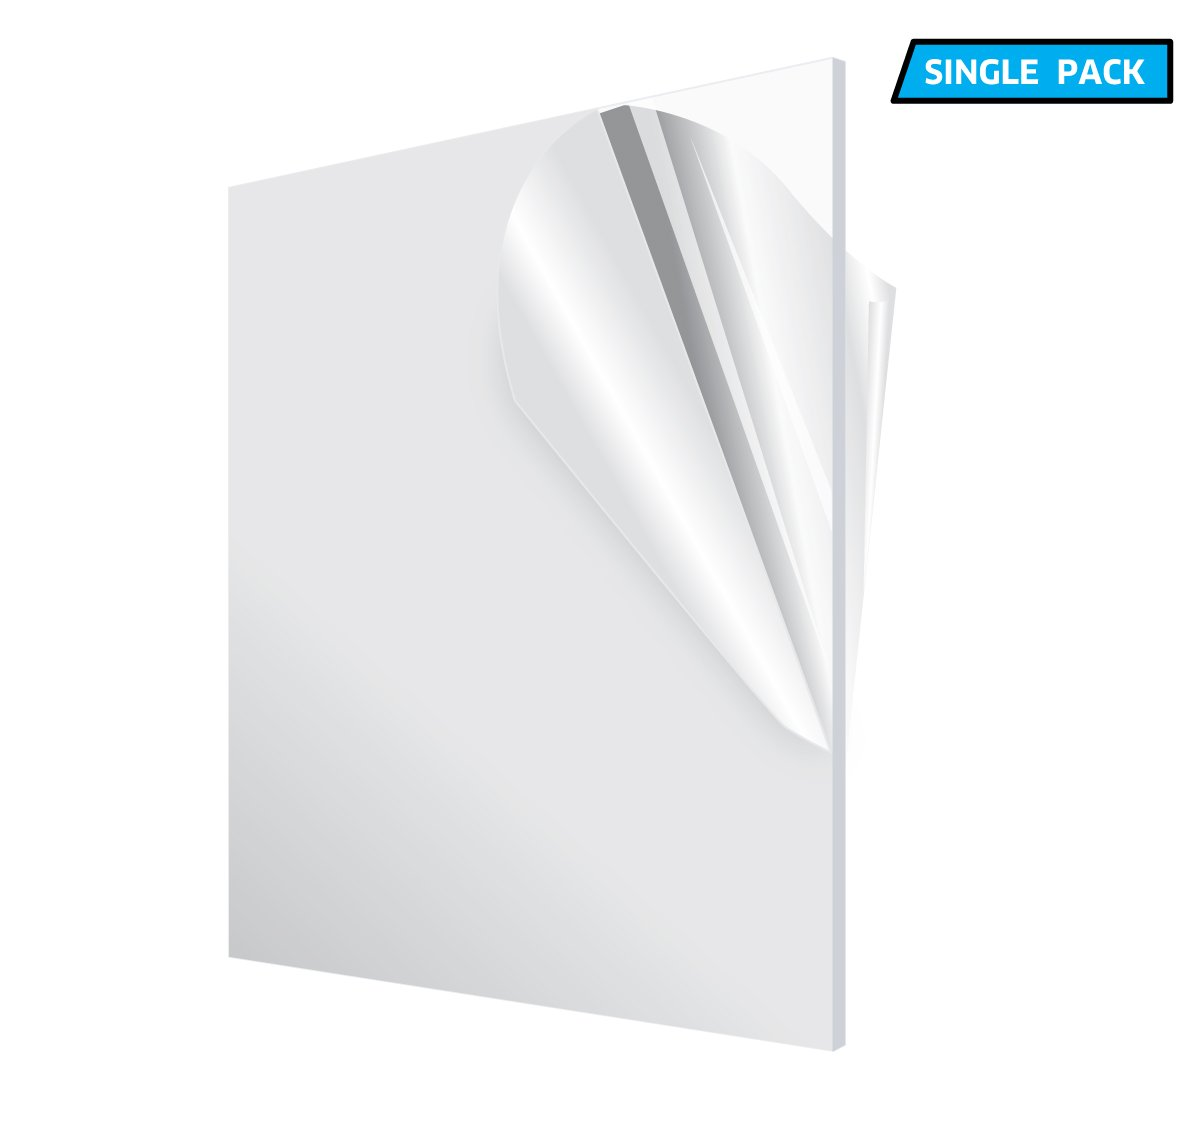 Best Rated in Plastic Sheets & Helpful Customer Reviews - Amazon.com